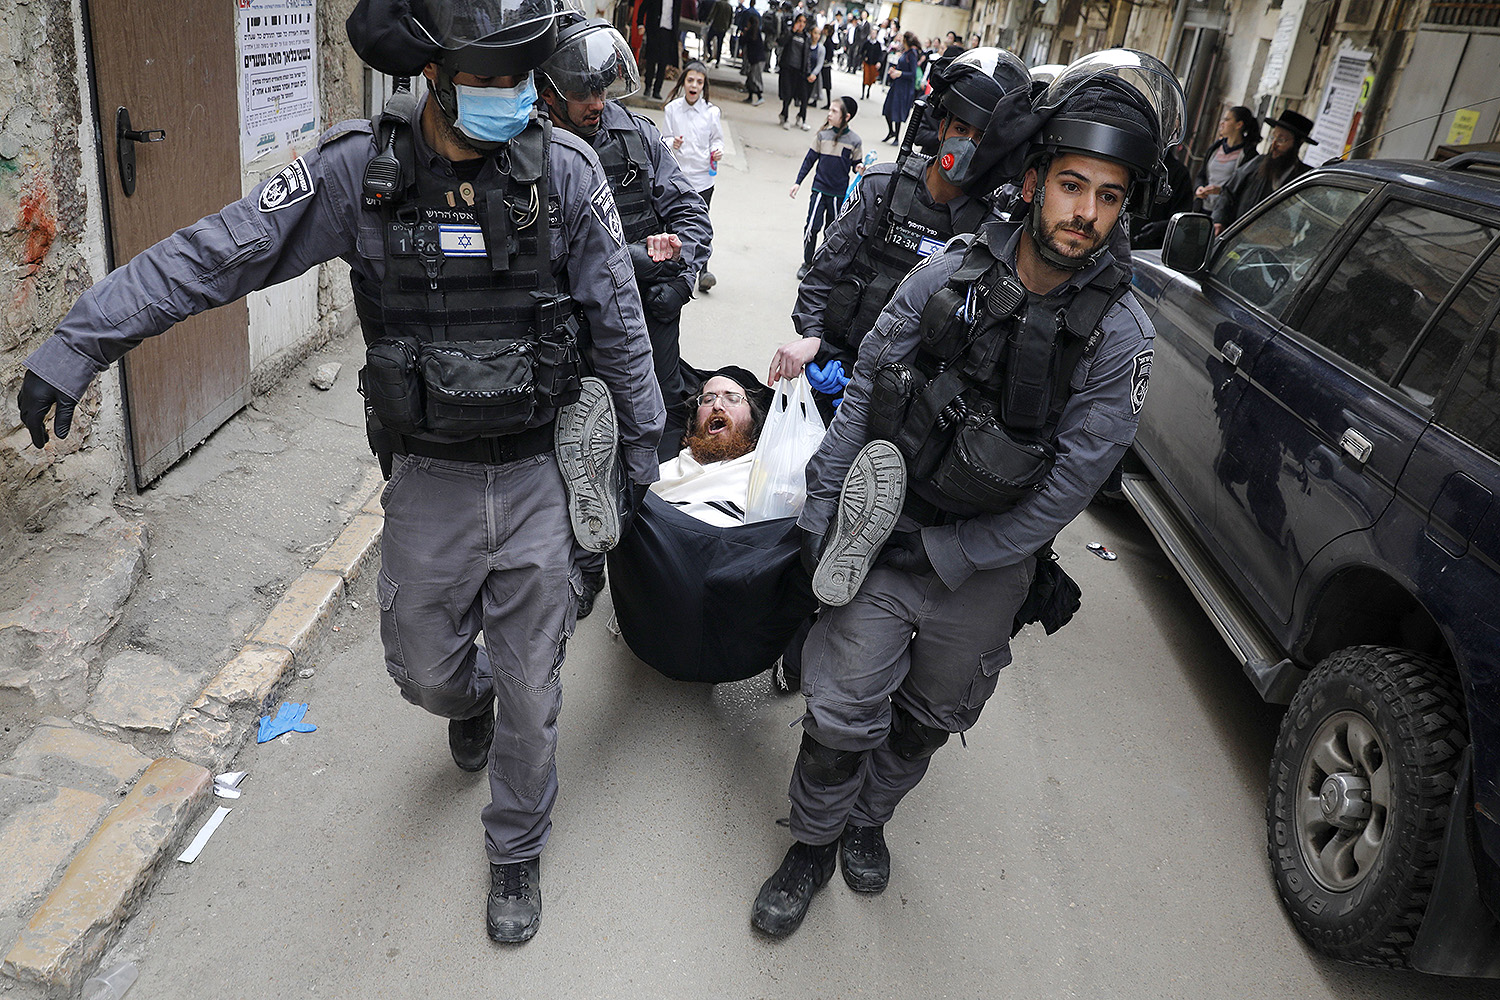 Israeli security forces arrest an ultra-Orthodox Jewish man as they close a synagogue in the Mea Shearim neighborhood in Jerusalem on March 30 amid efforts to curb the spread of the coronavirus. AHMAD GHARABLI/AFP via Getty Images